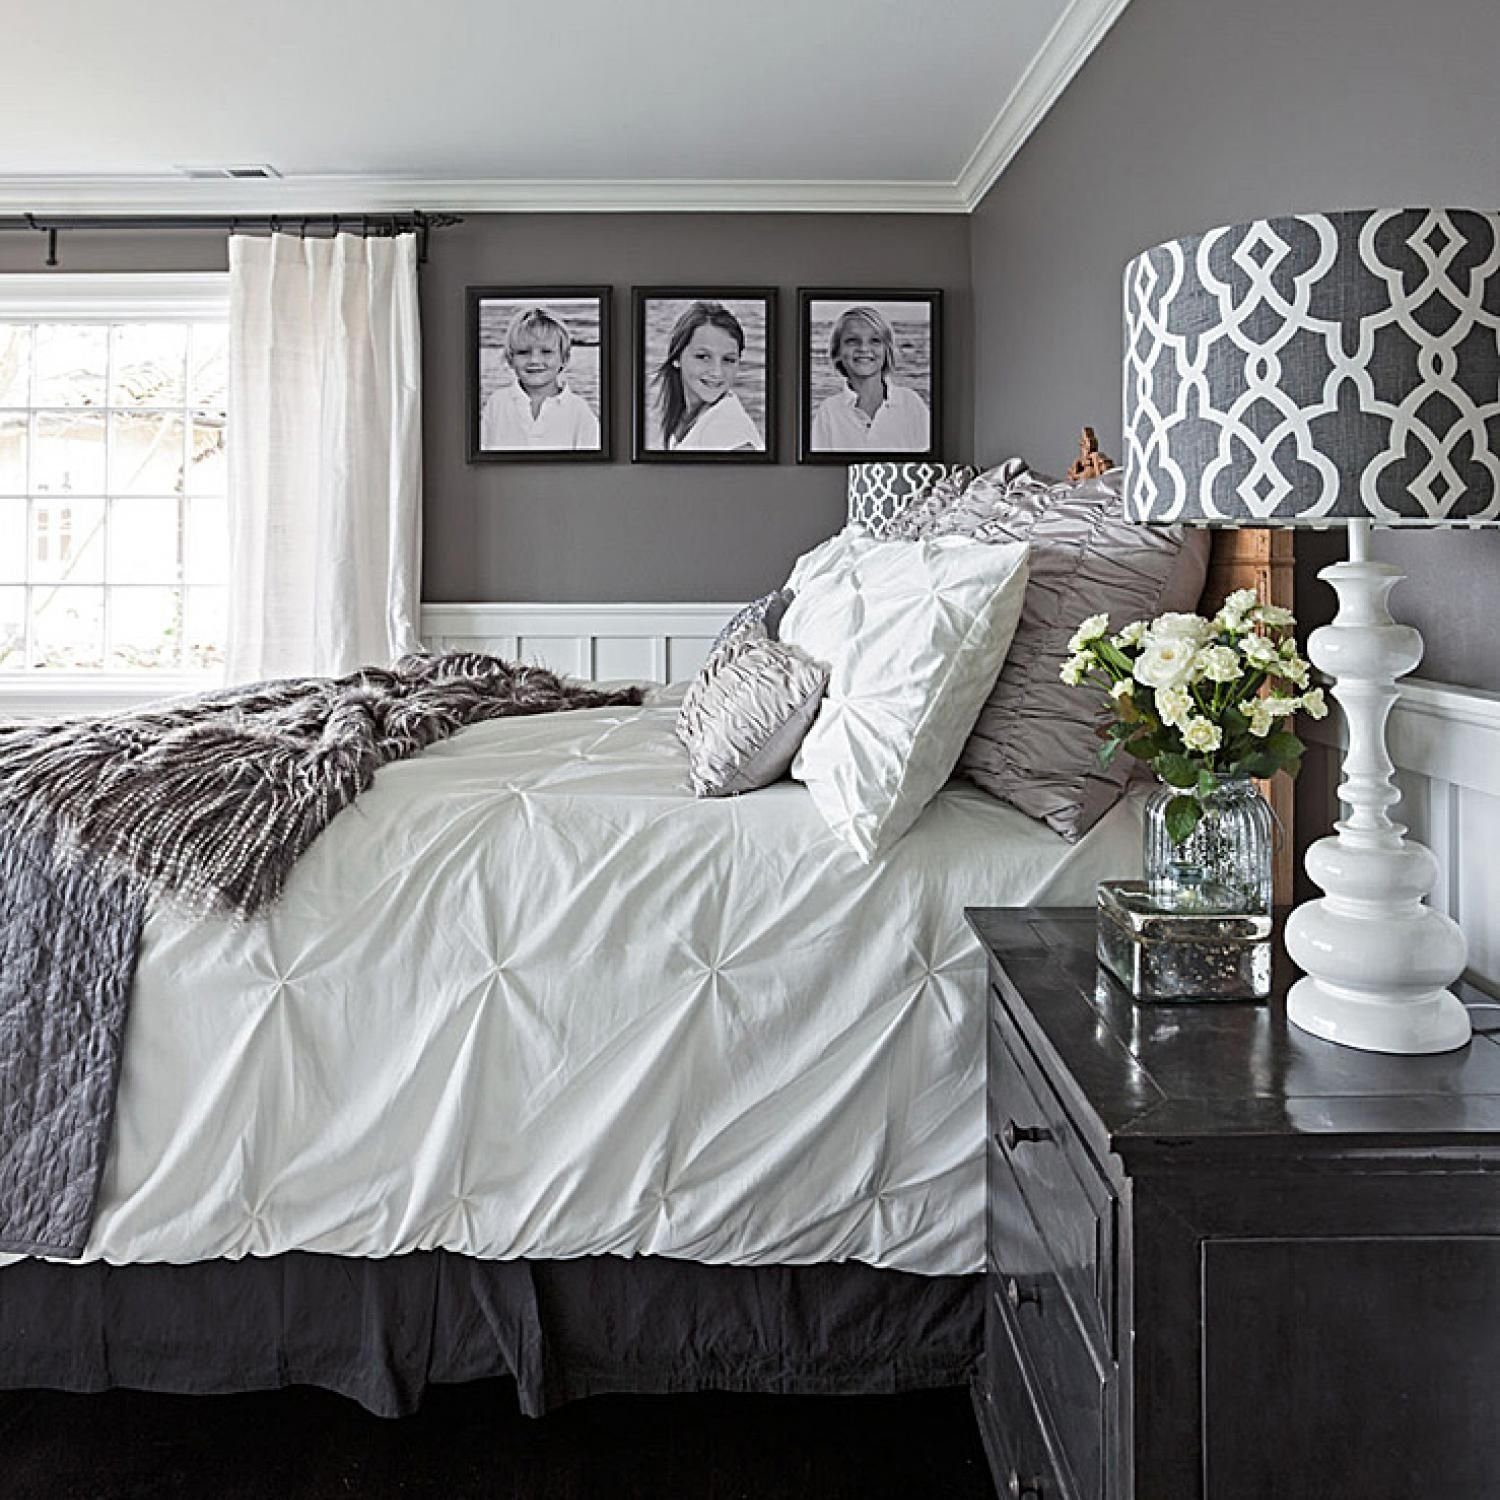 10 Attractive Black White And Gray Bedroom Ideas gorgeous gray and white bedrooms bedrooms gray and master bedroom 2021